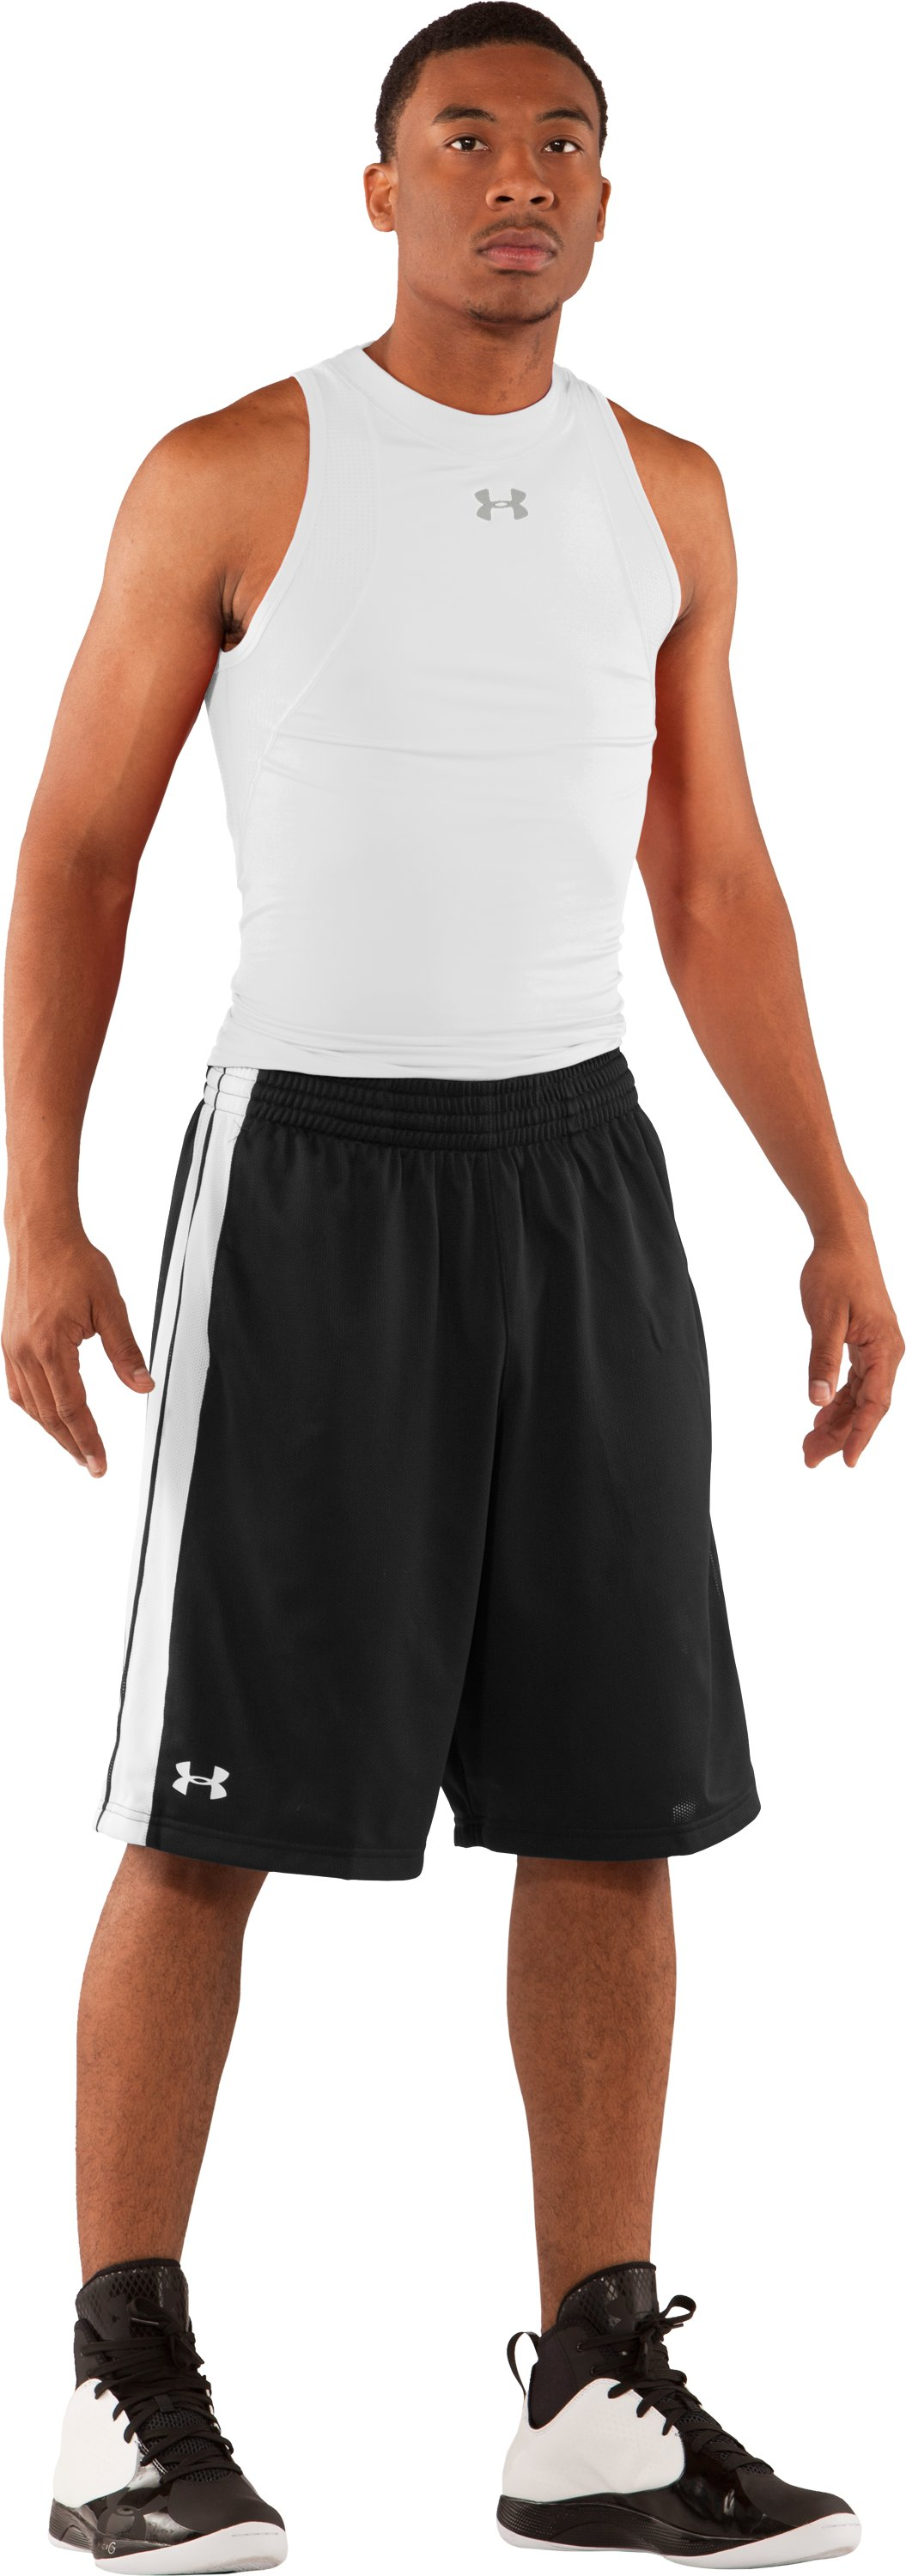 "Men's 10"" Basketball Practice Shorts, Black"